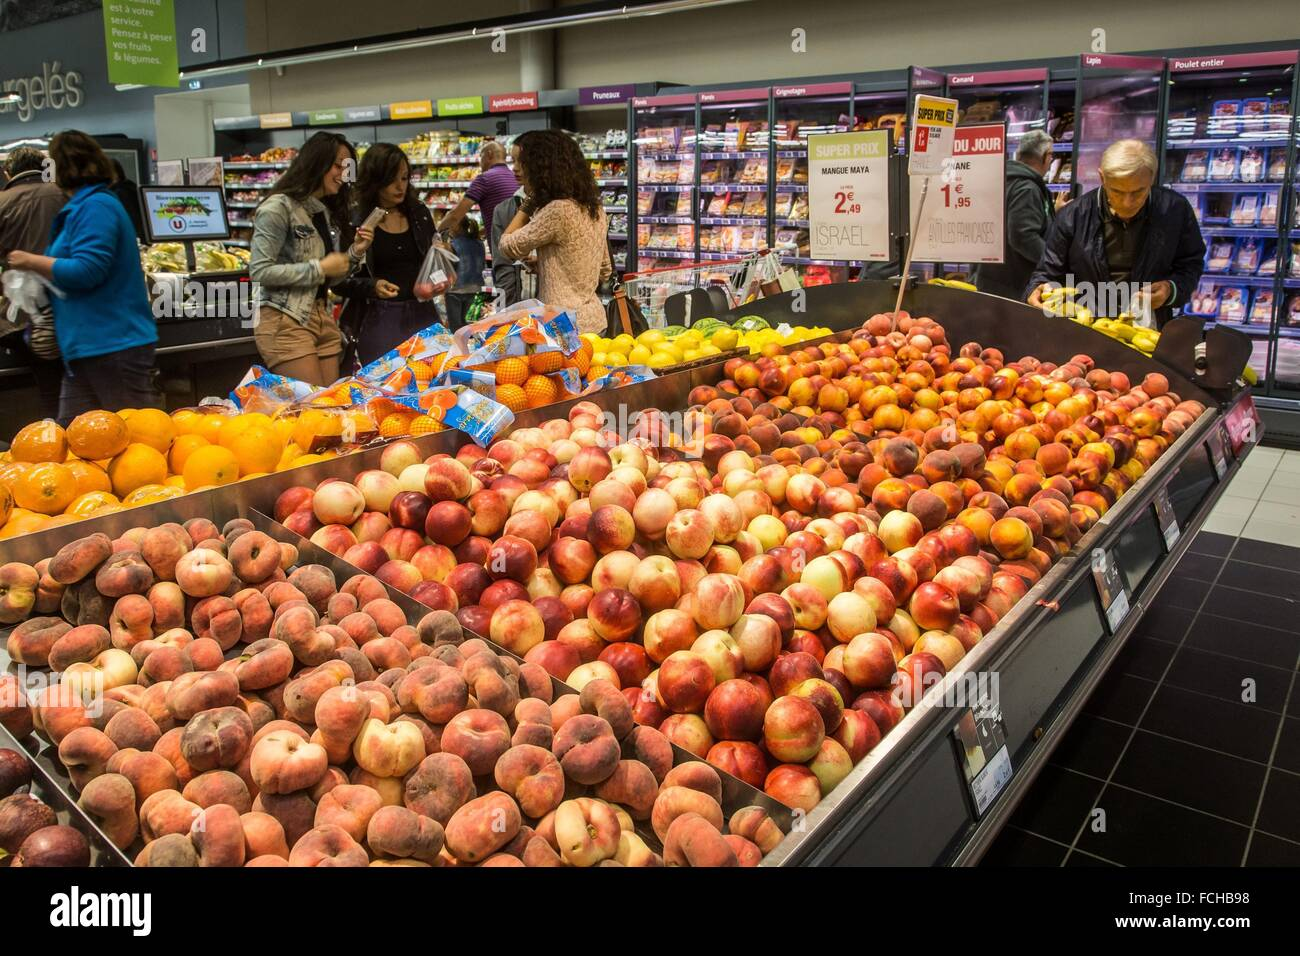 ILLUSTRATION OF CONSUMER CONSUMPTION IN FRANCE - Stock Image